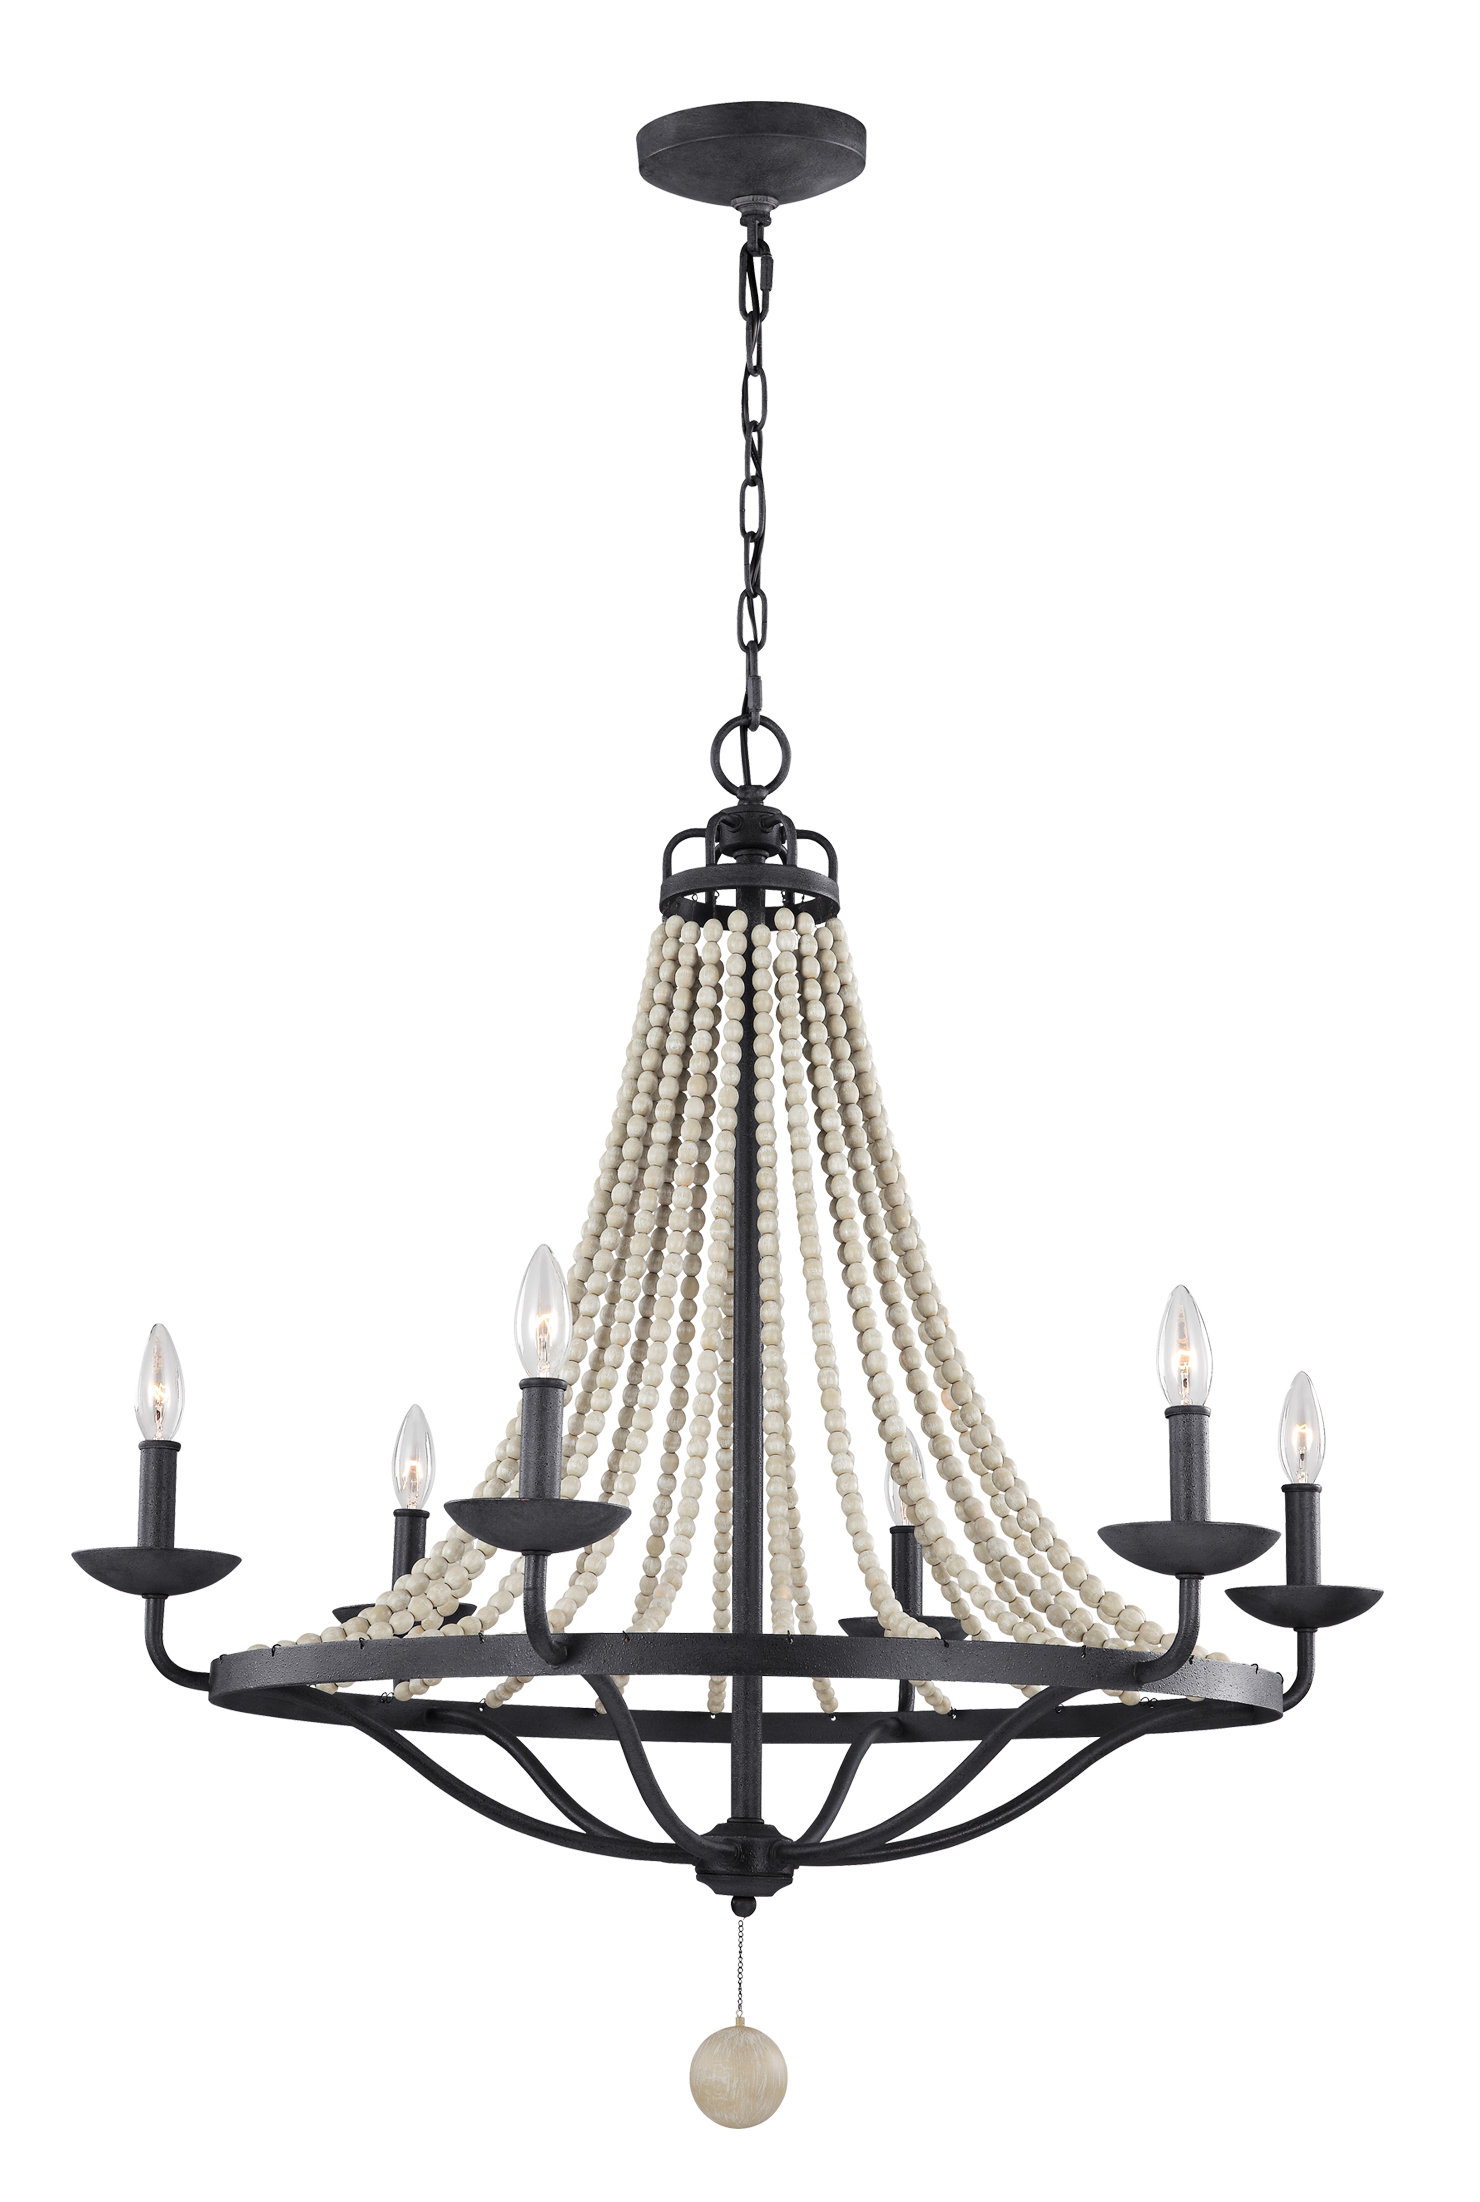 Granger 6 Light Empire Chandelier Throughout Most Popular Duron 5 Light Empire Chandeliers (Gallery 20 of 20)